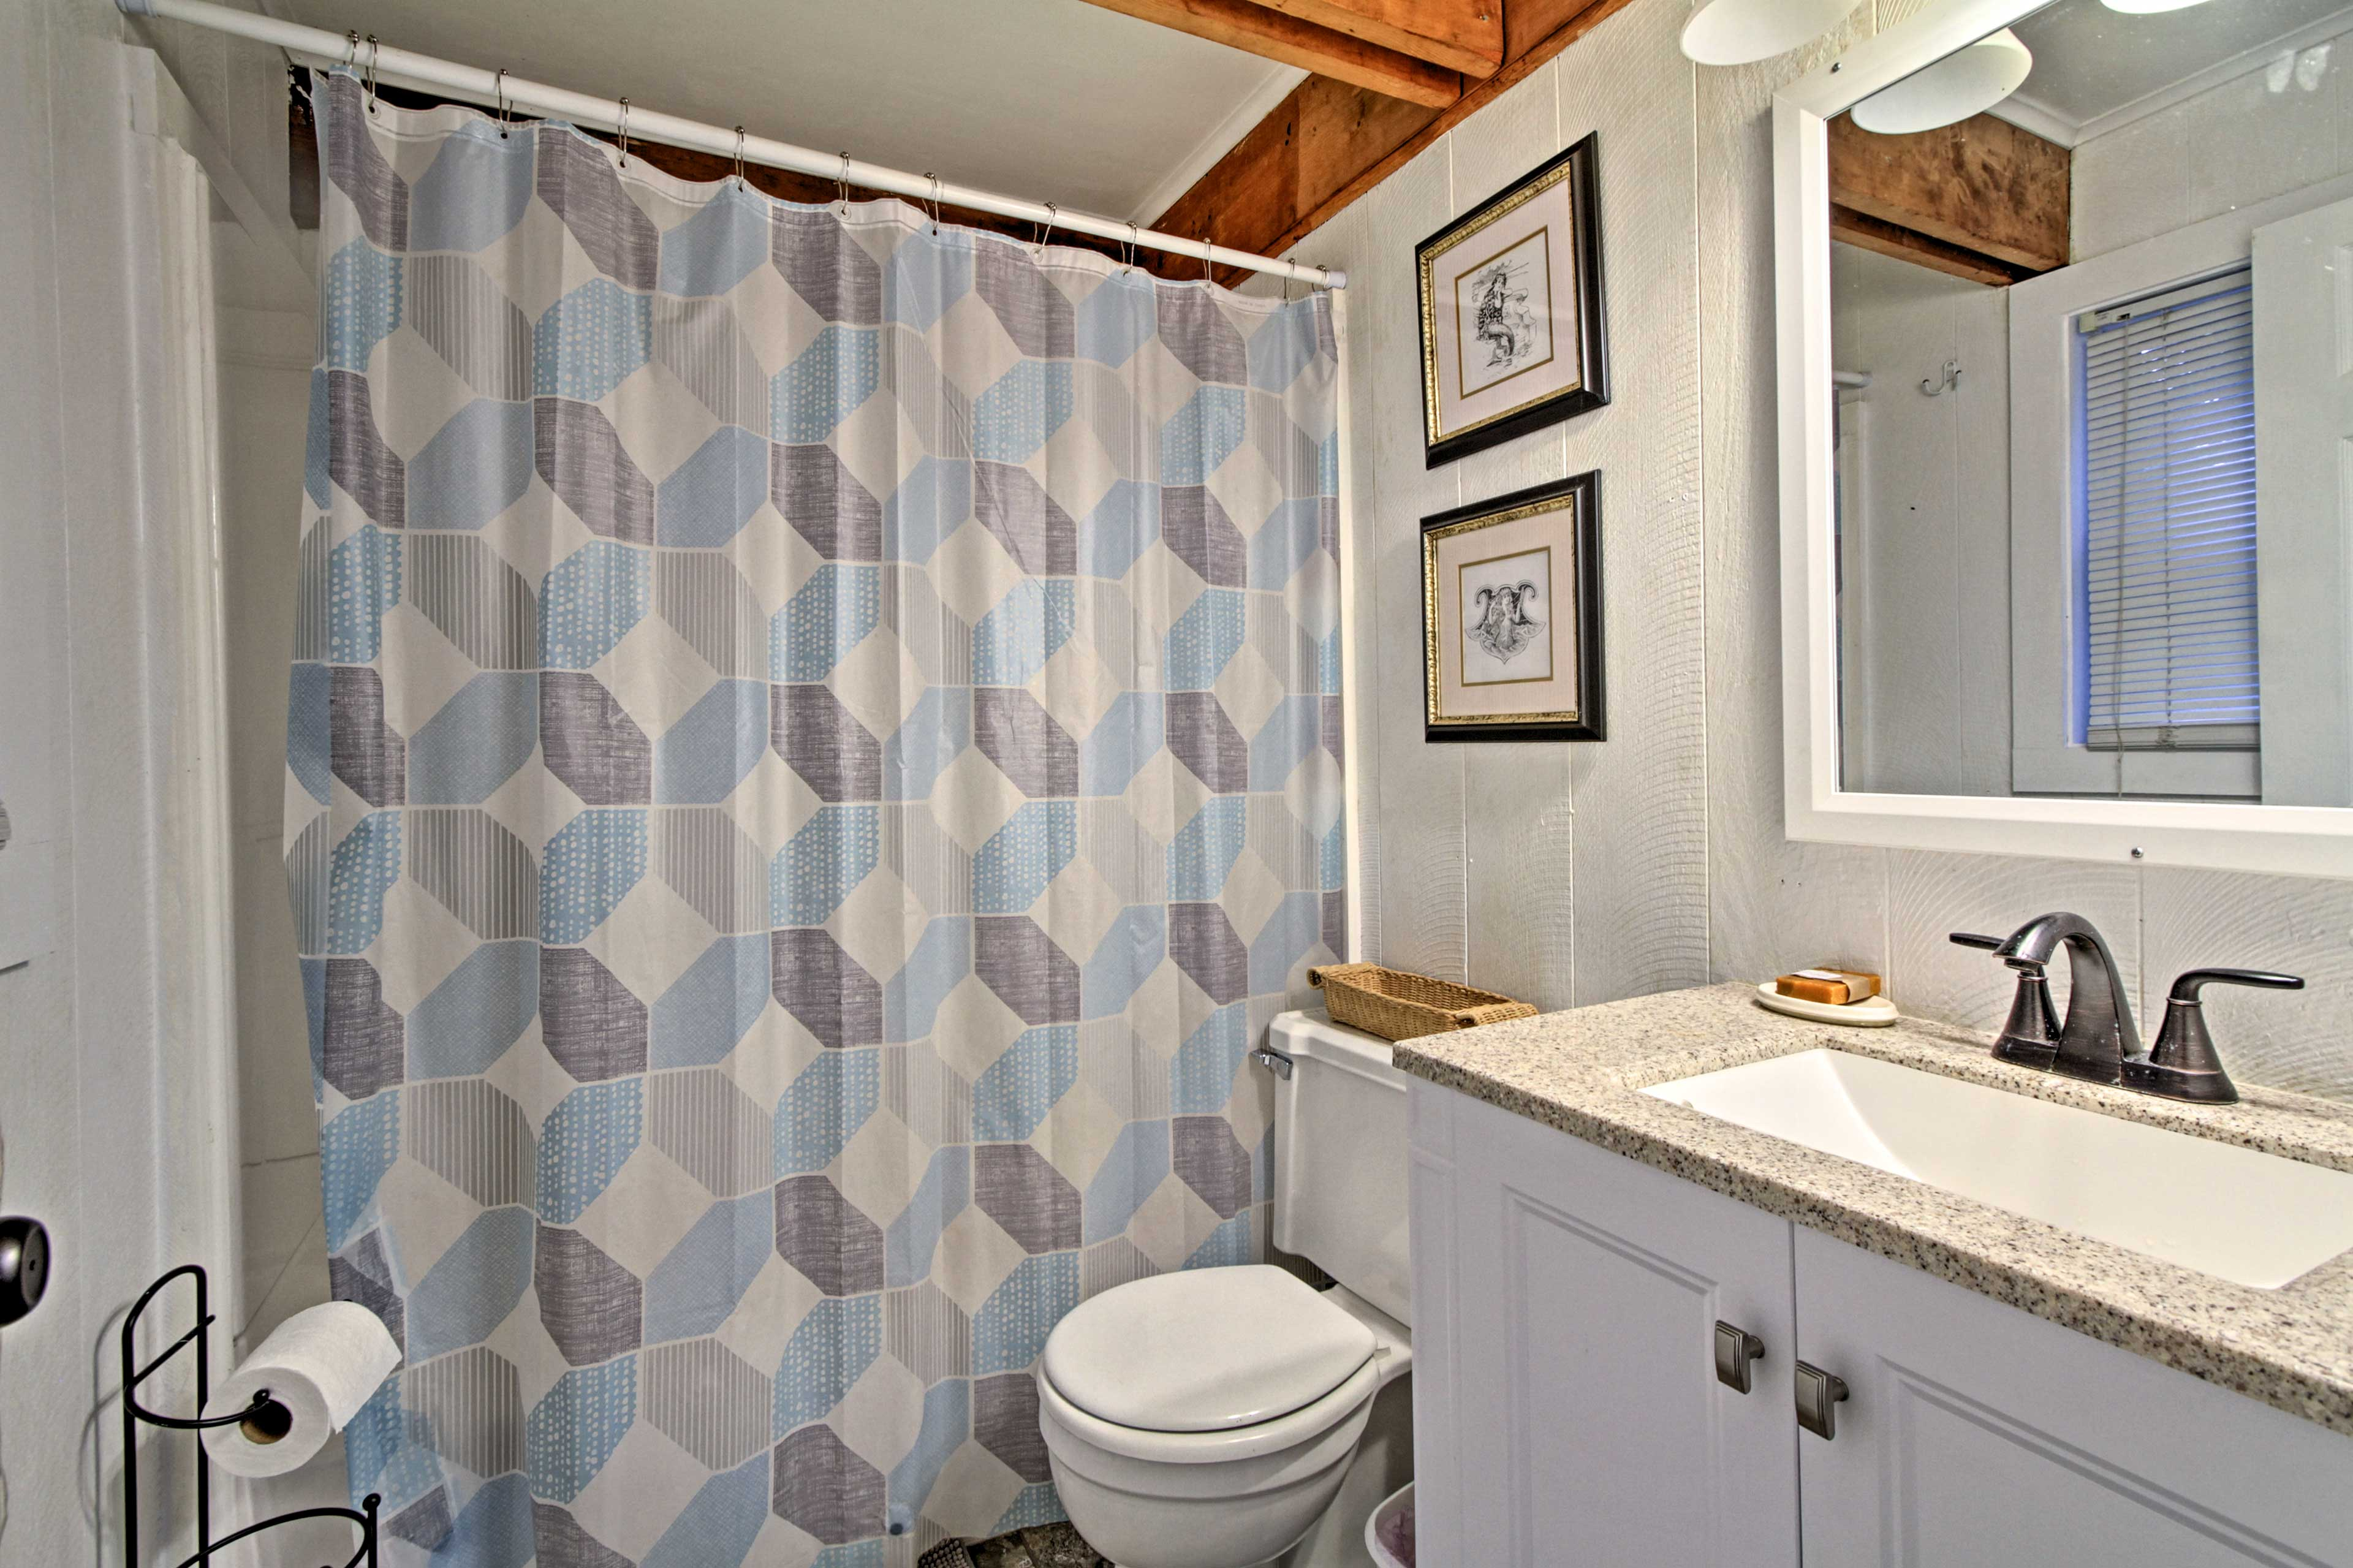 This home boasts 4 full bathrooms, giving everyone plenty of privacy.